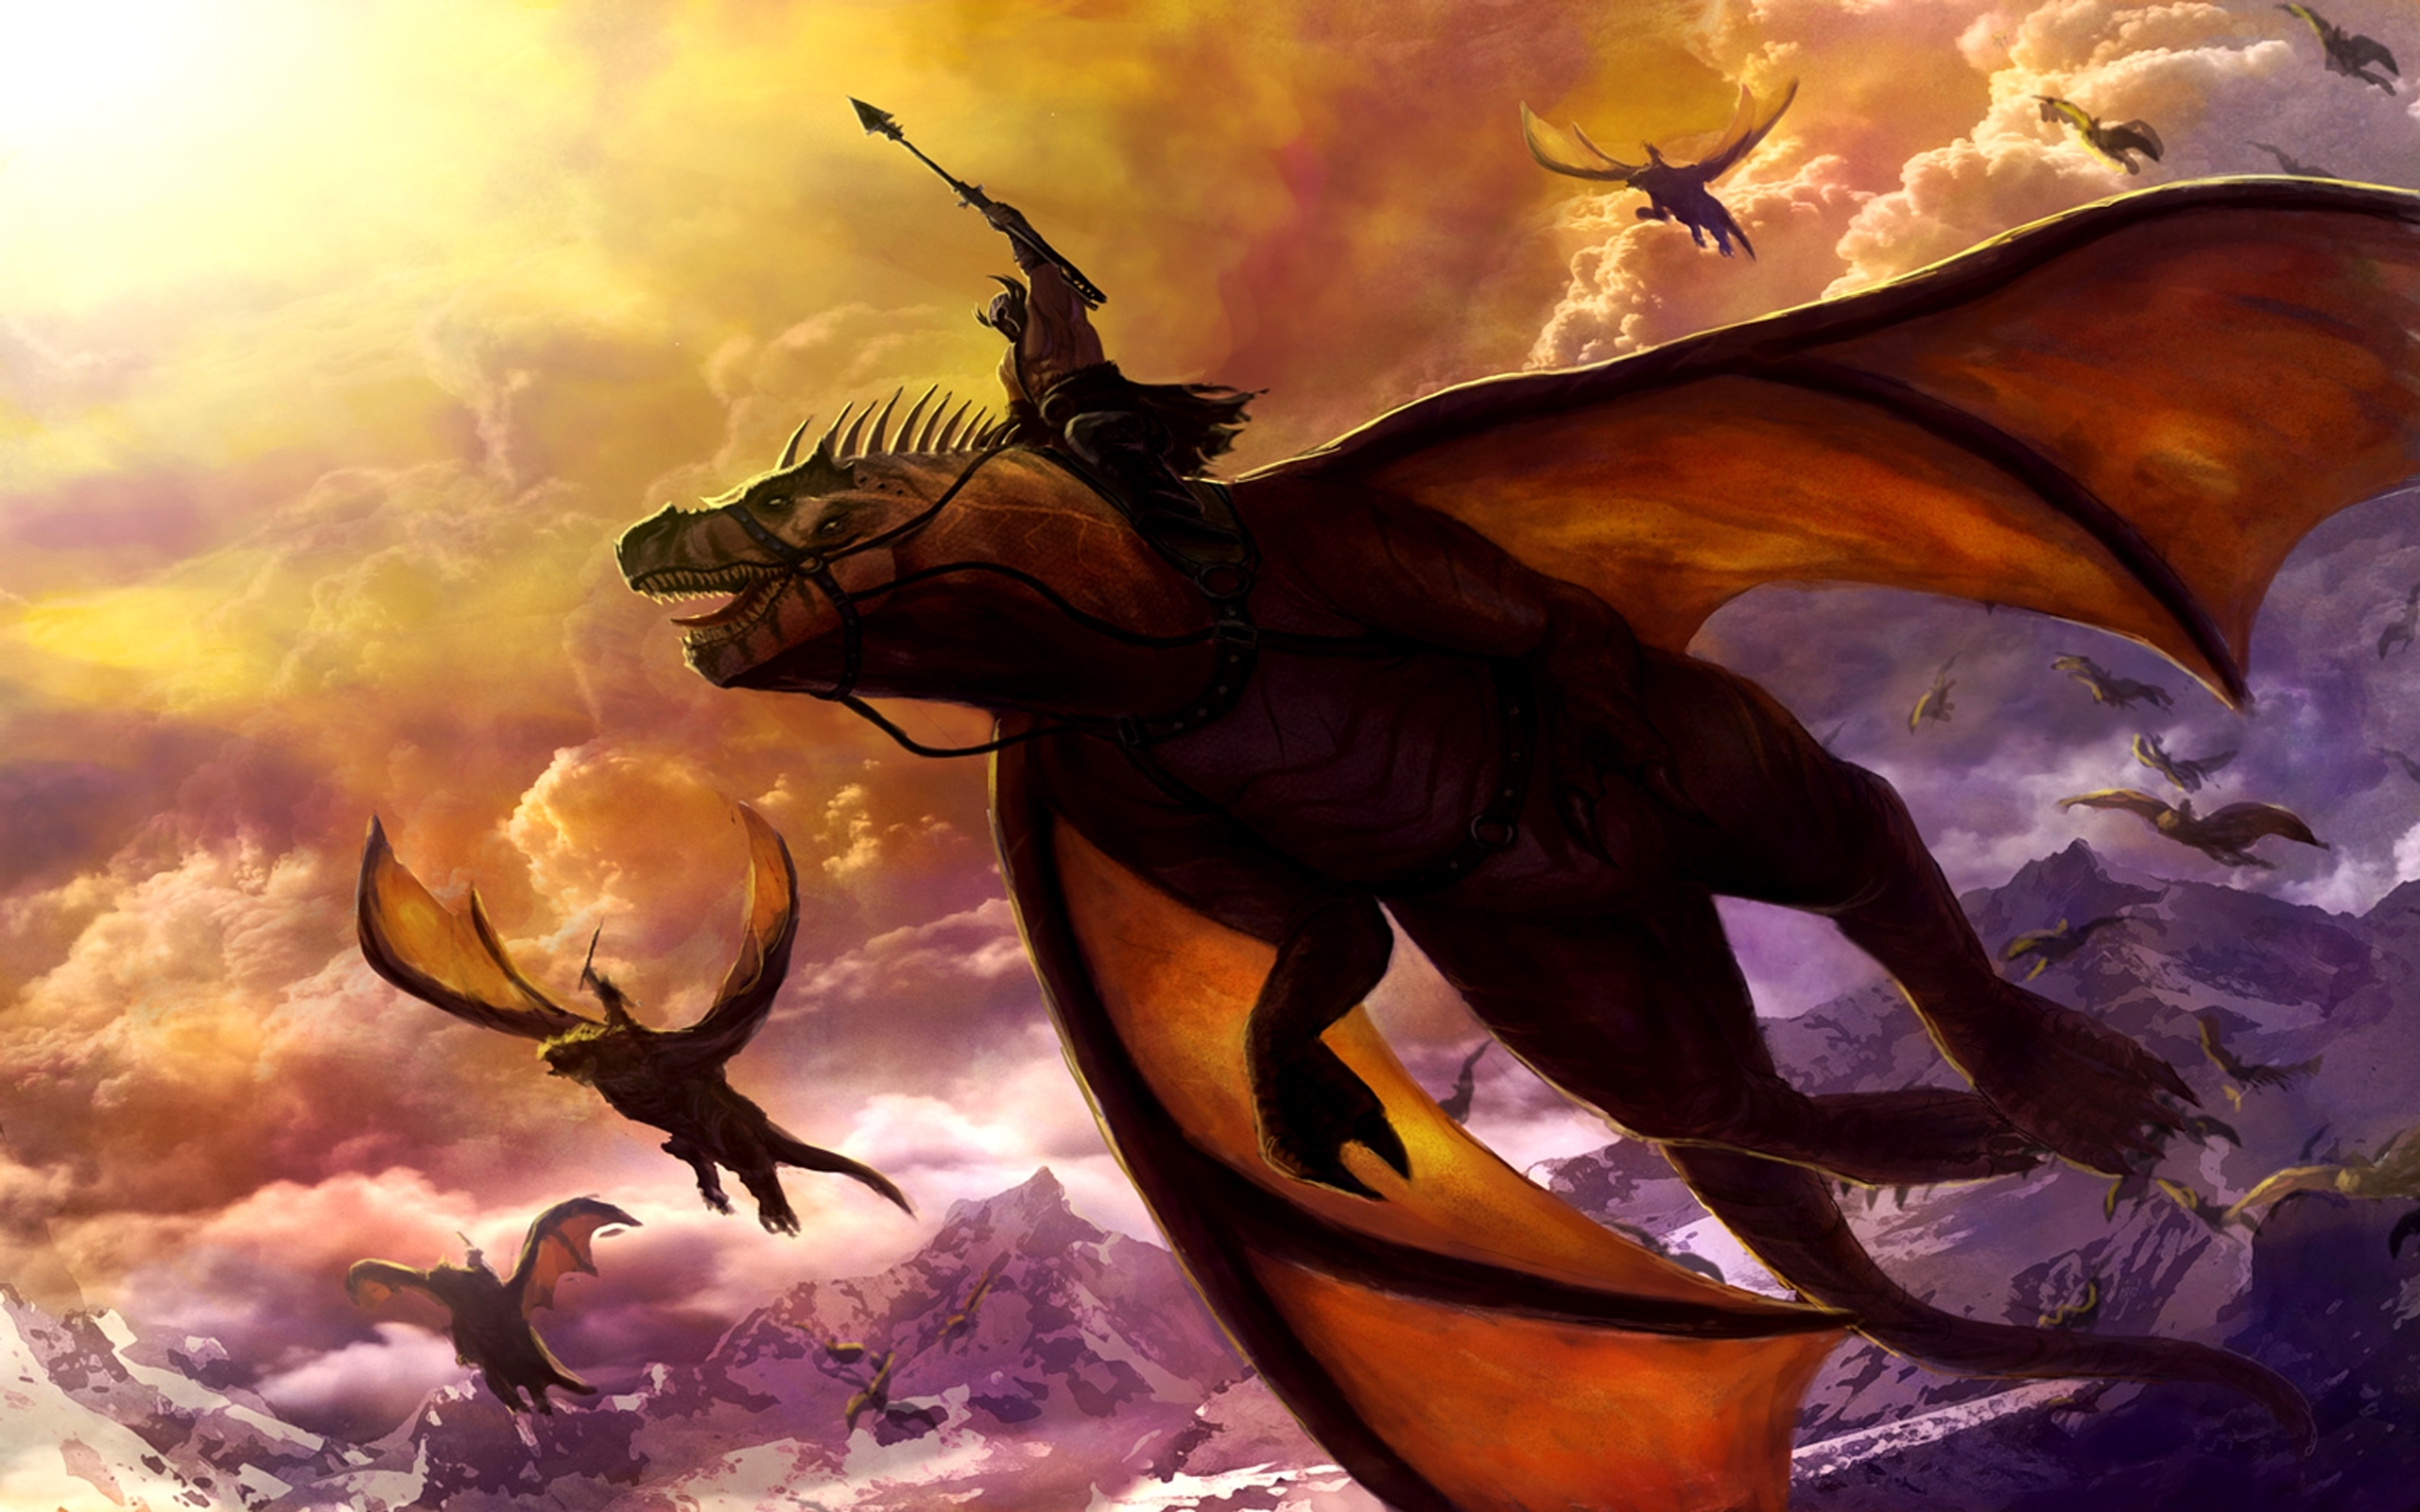 23971 download wallpaper Fantasy, Dragons screensavers and pictures for free